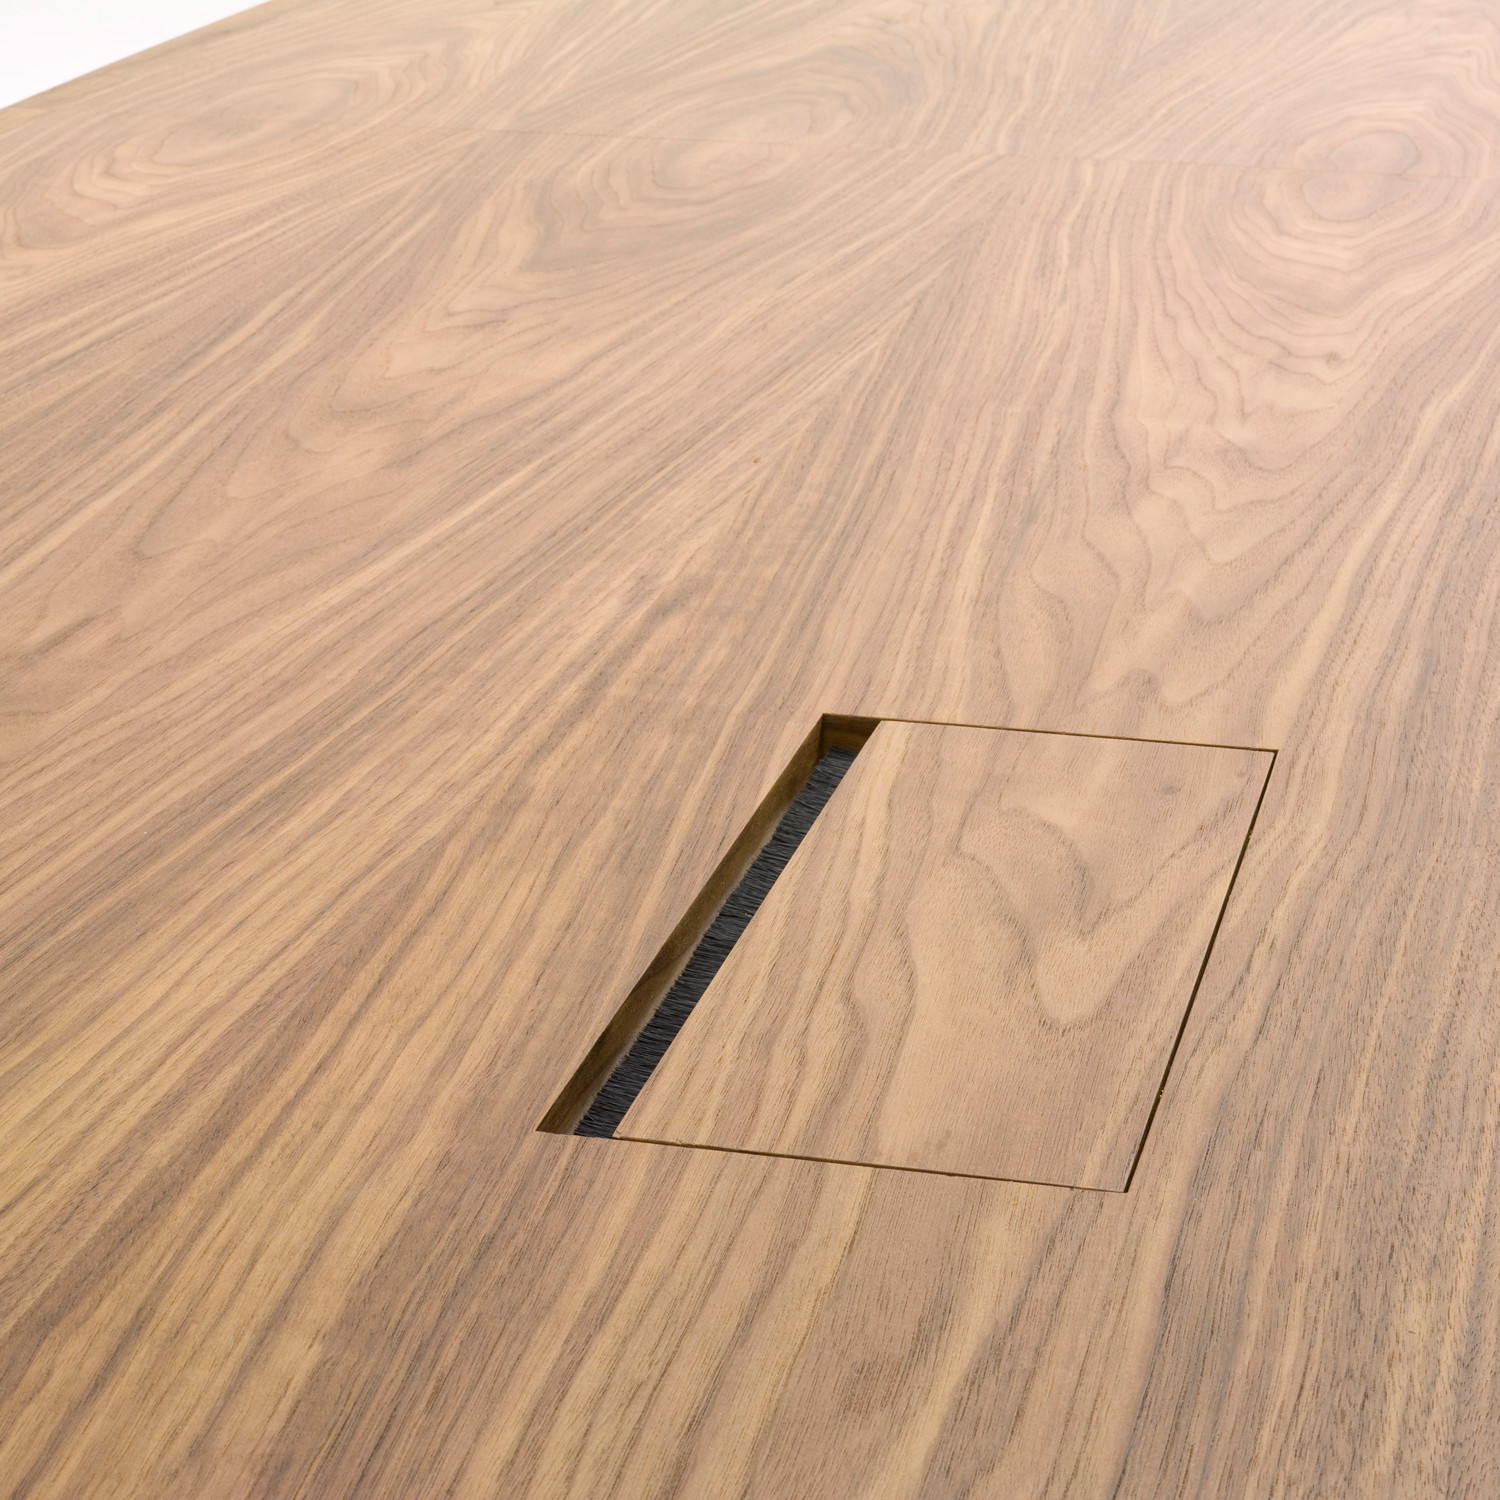 Nimbus conference table top